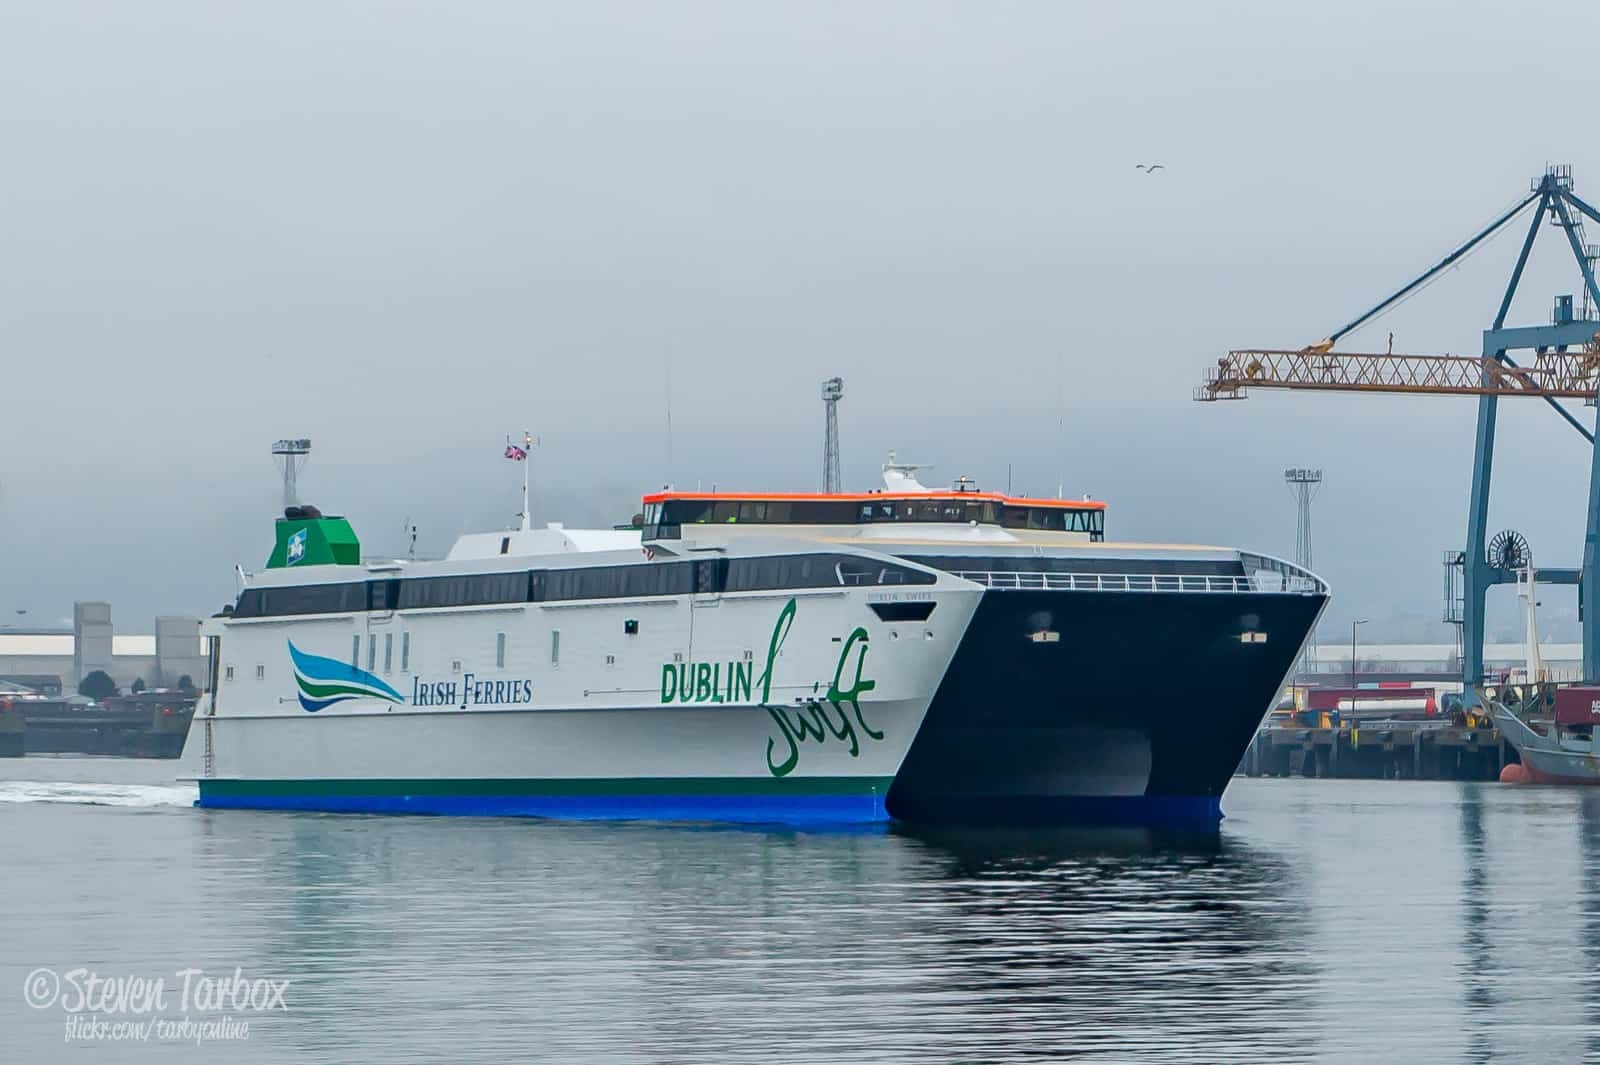 Irish Ferries' Austal AutoExpress catamaran DUBLIN SWIFT passes Beflast's Victoria Terminal 3 container terminal as she leaves Belfast for Dublin. This followed the conclusion of a comprehensive 3-month long refit and conversion project at Belfast's Harland & Wolff Shipyard